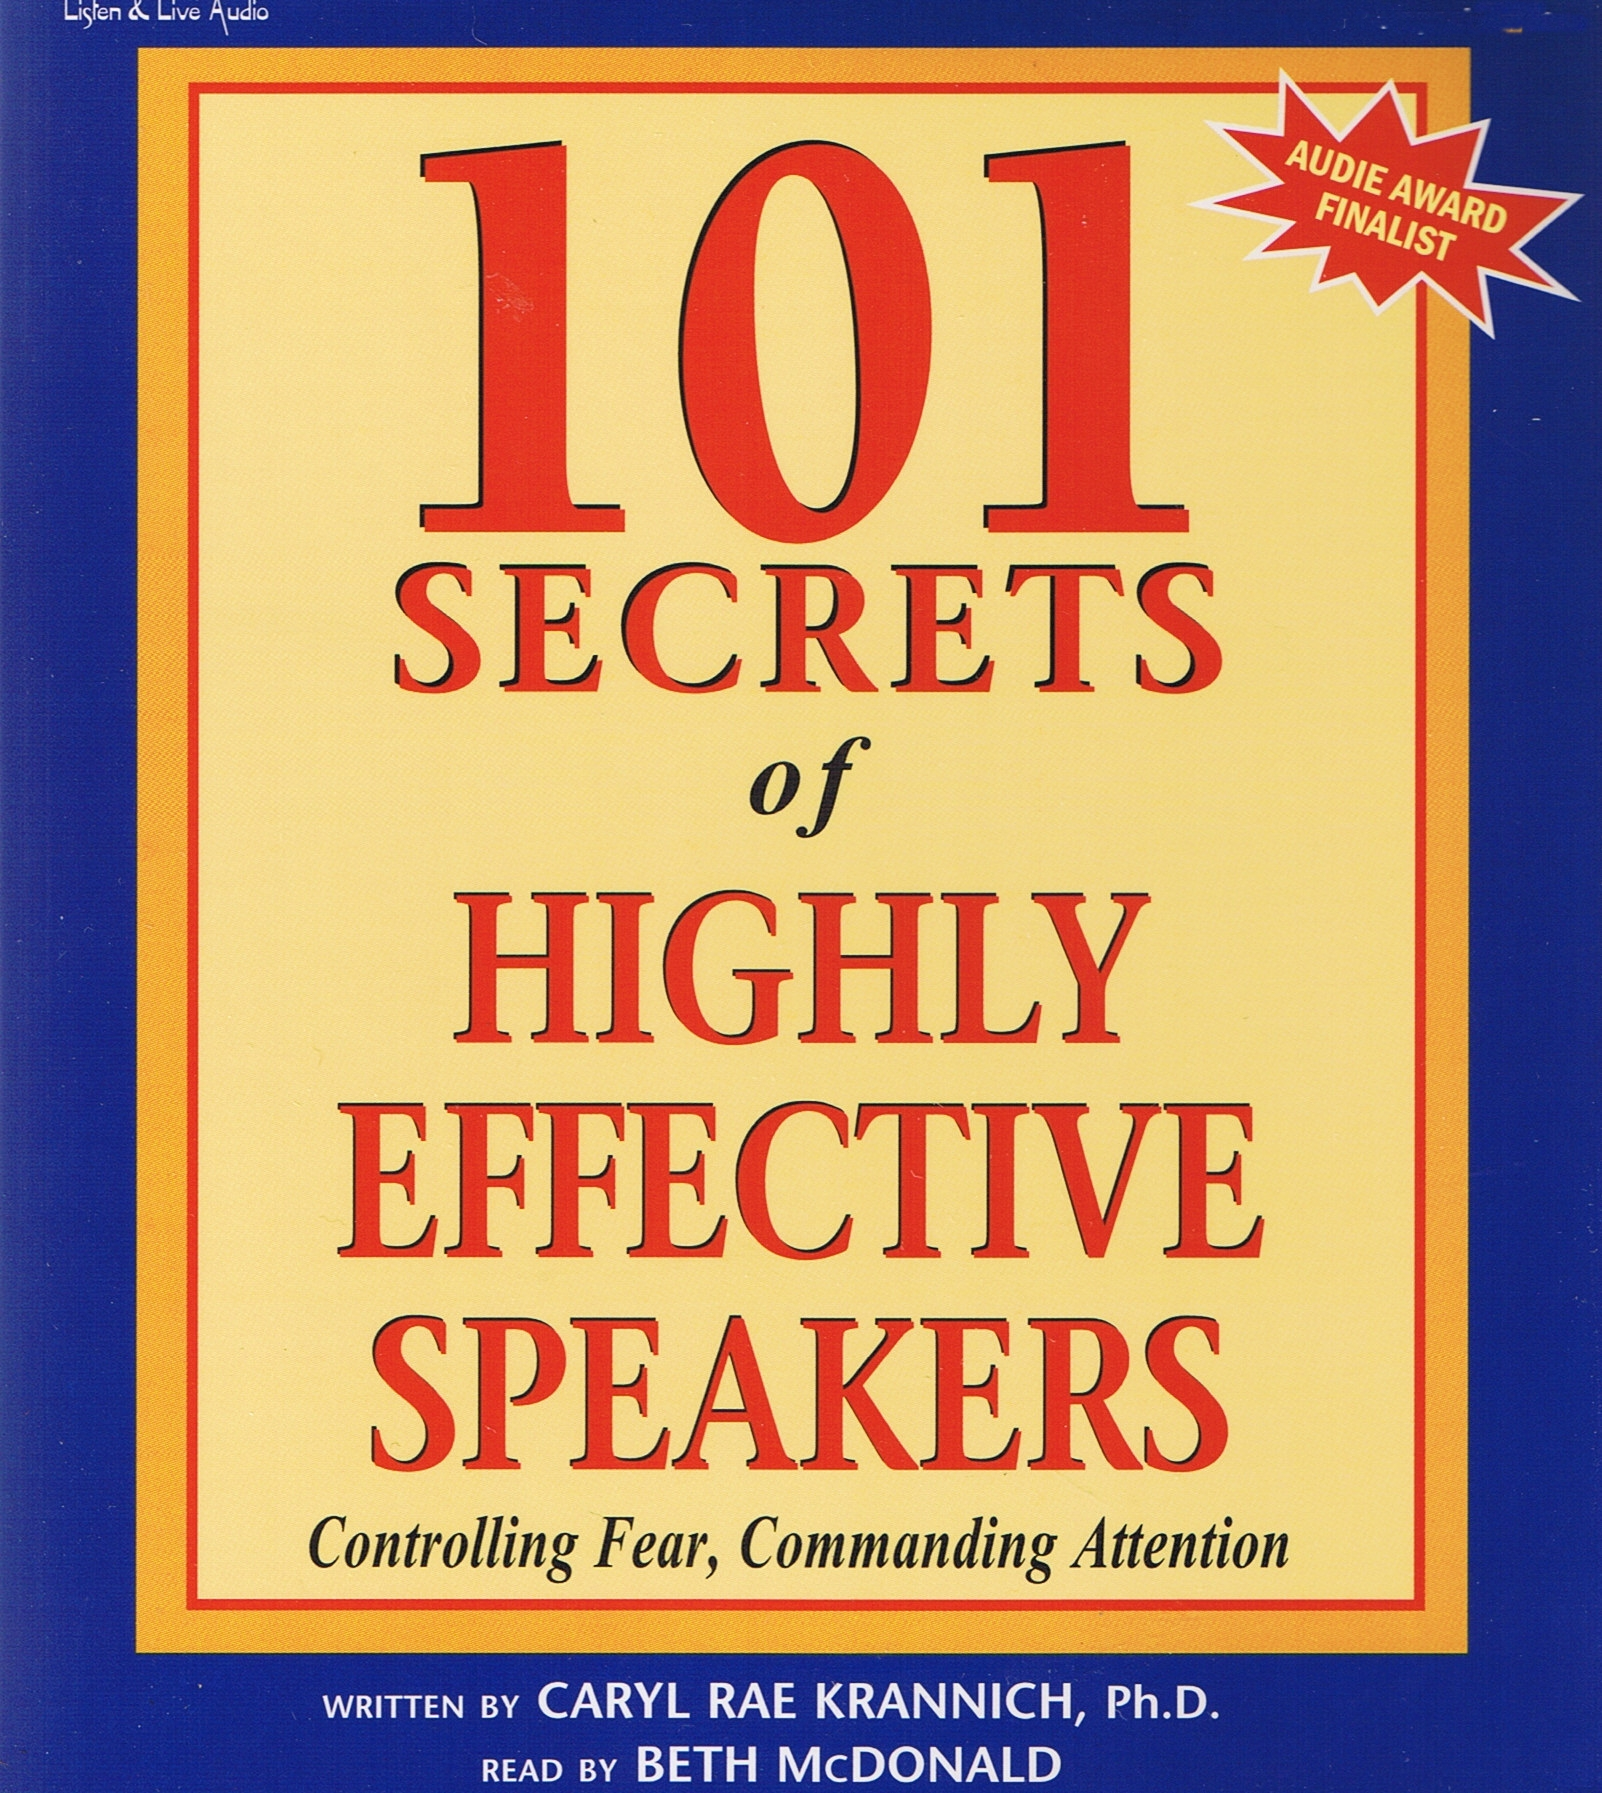 101 Secrets Of Highly Effective Speakers [DD]